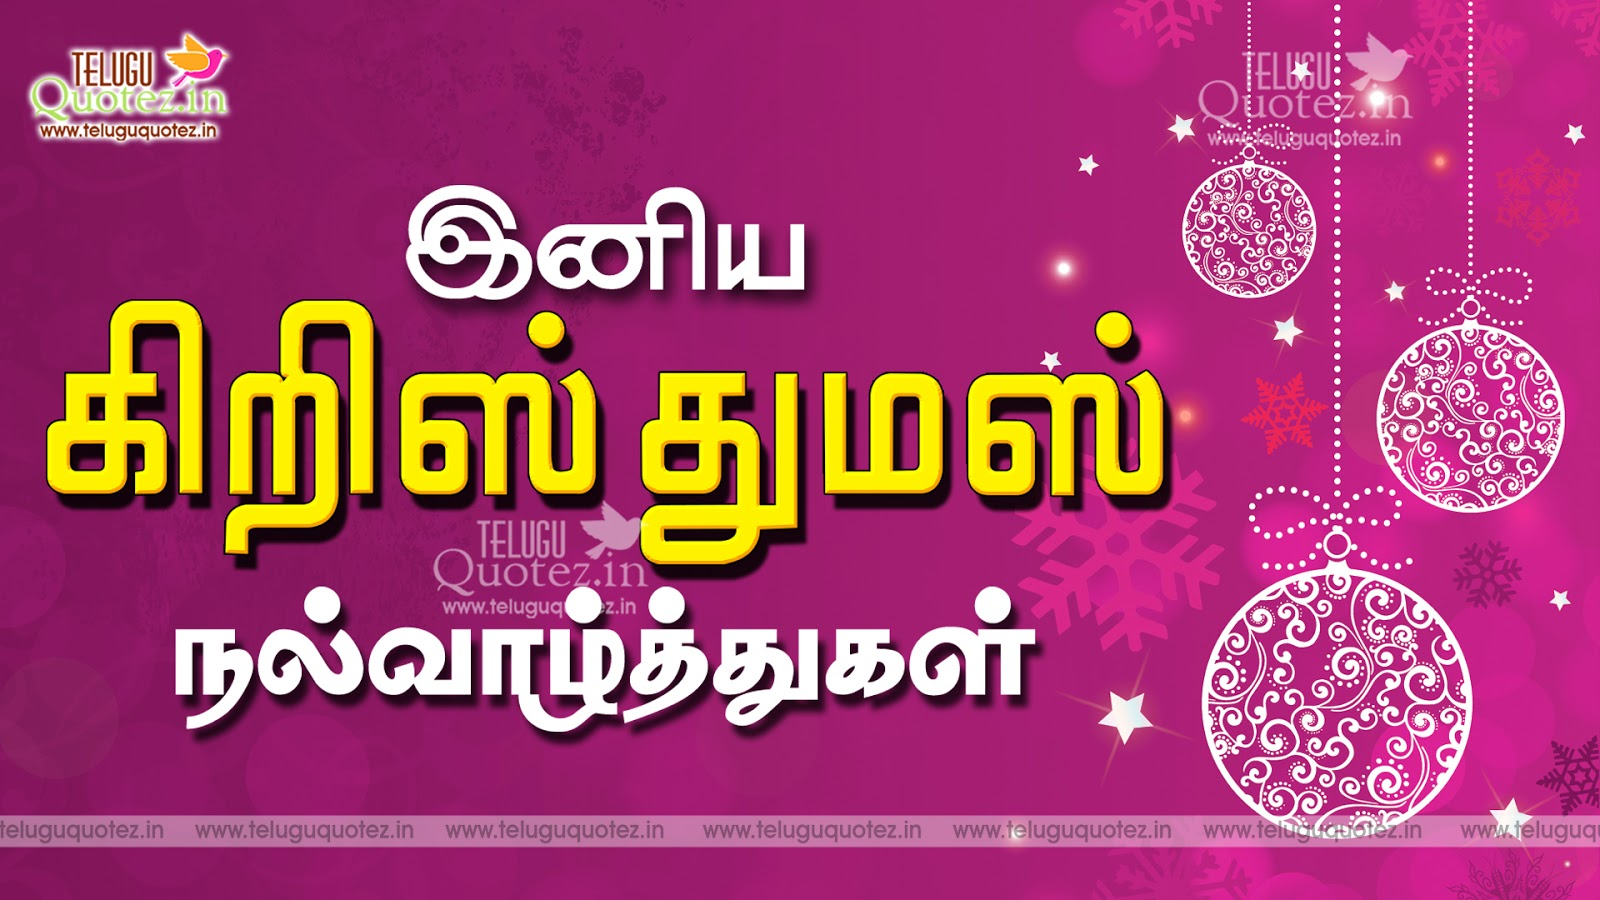 Tamil christmas greeting cards hd images for facebook teluguquotez merry christmas cards and tamil wishes quotes teluguquotez kristyandbryce Images